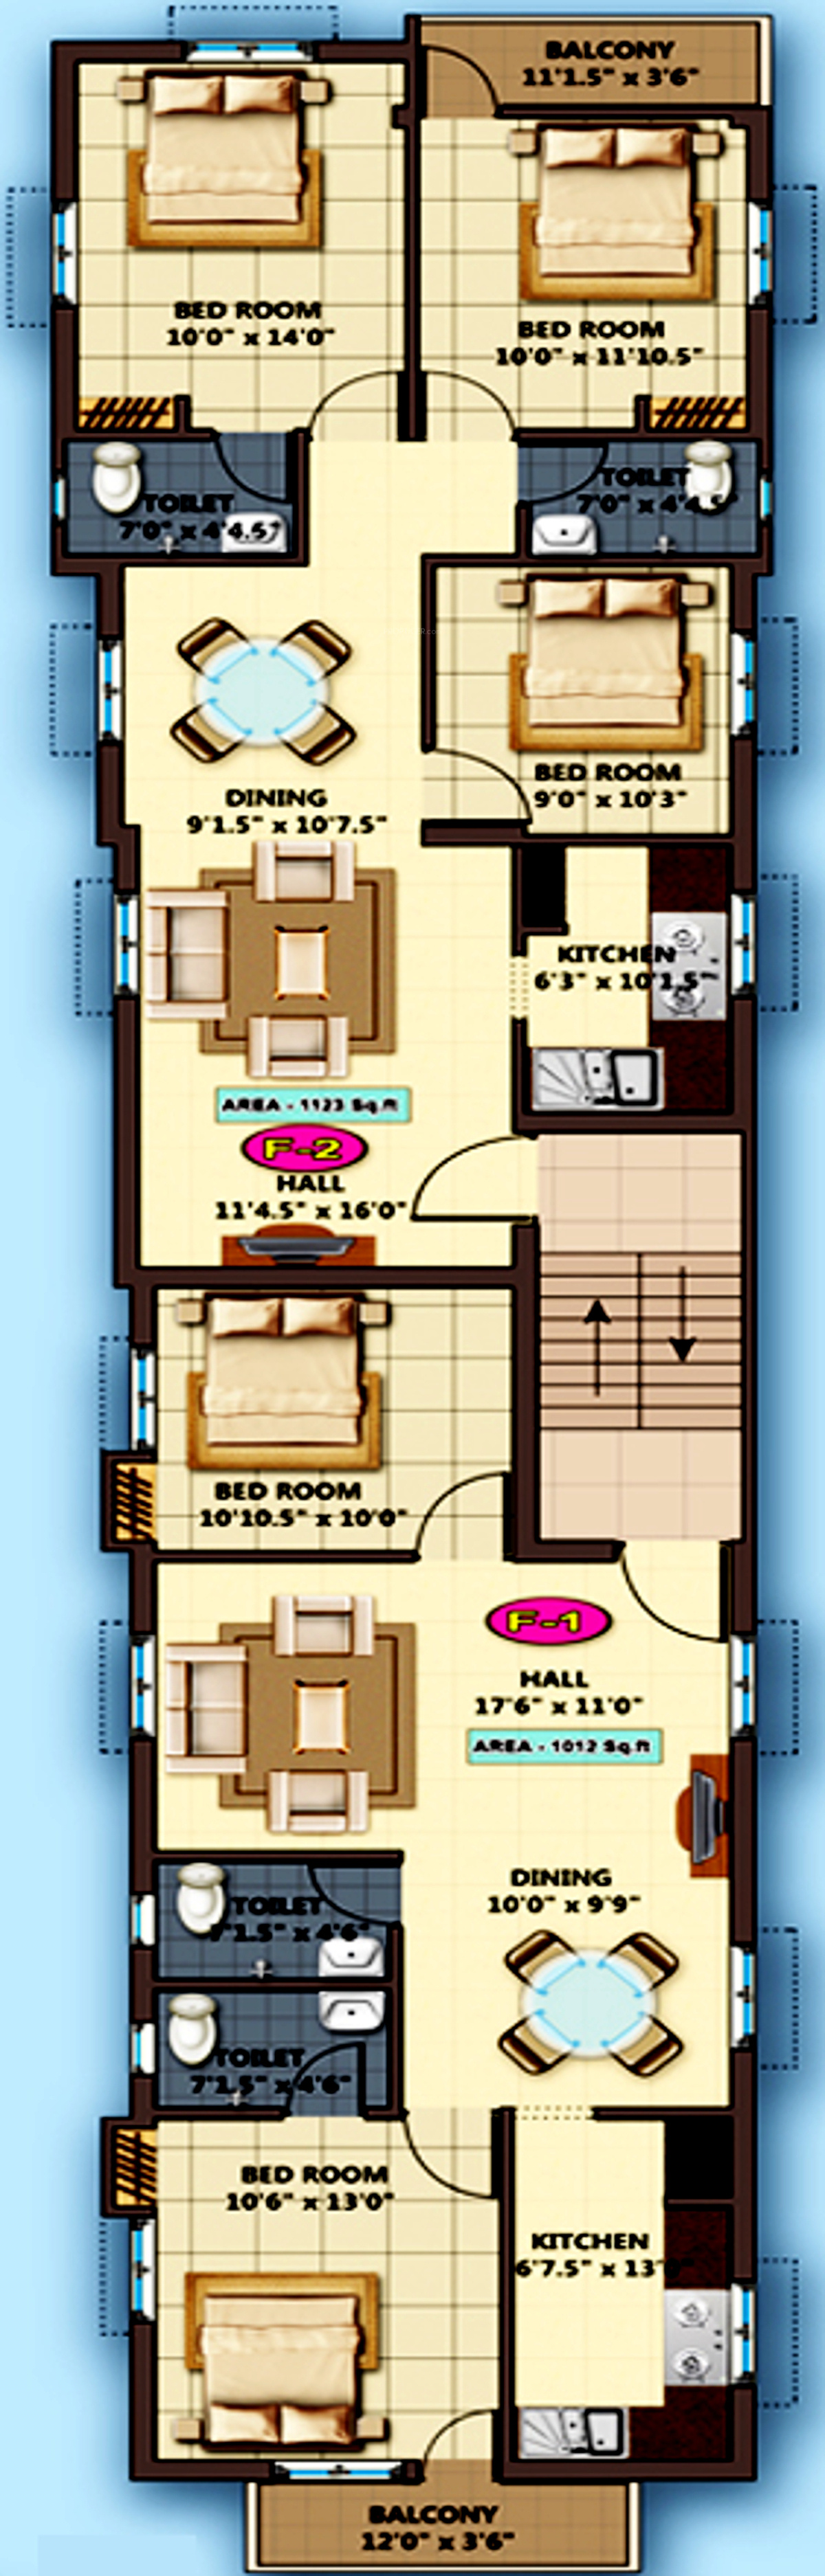 1124 Sq Ft 3 Bhk 2t Apartment For Sale In Sarvajith Royal